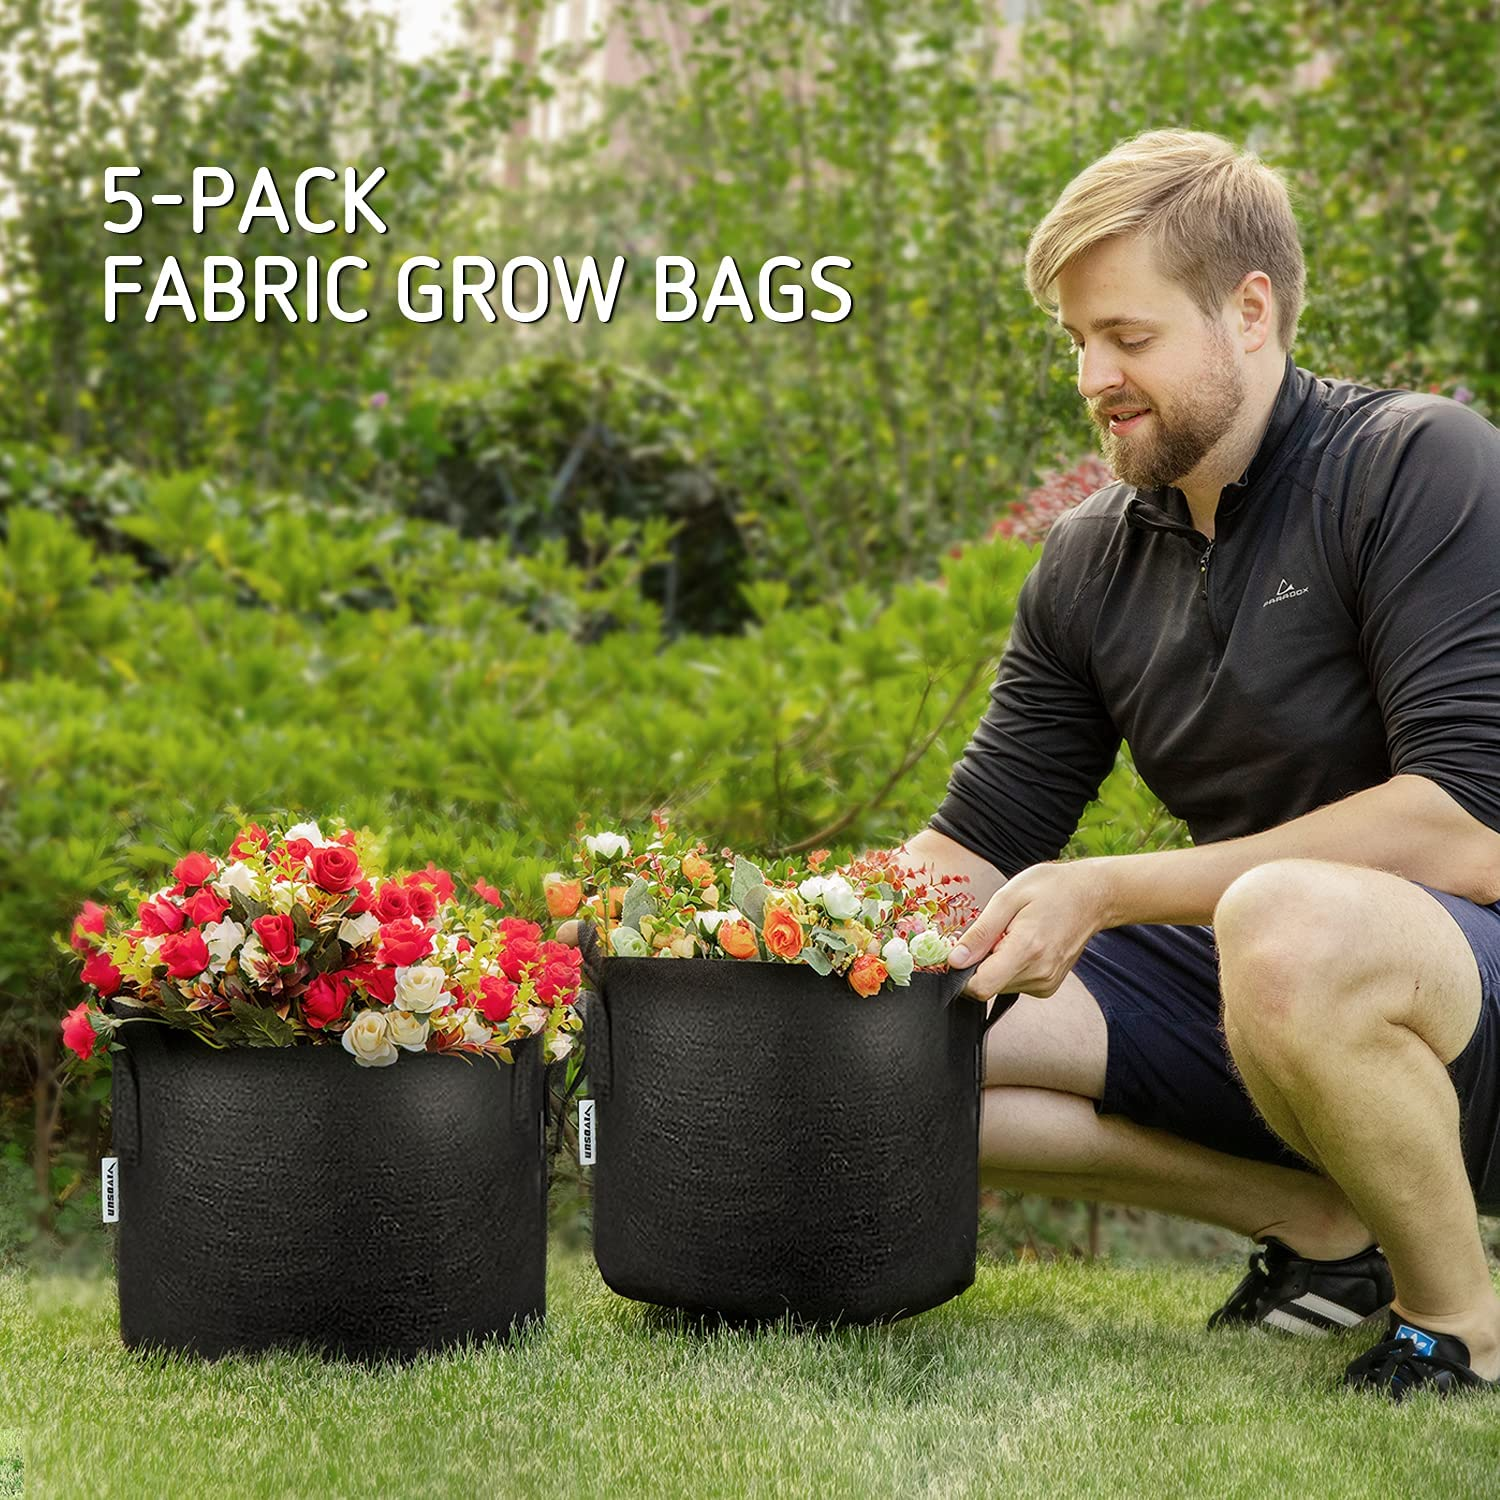 Why to use Grow Bags